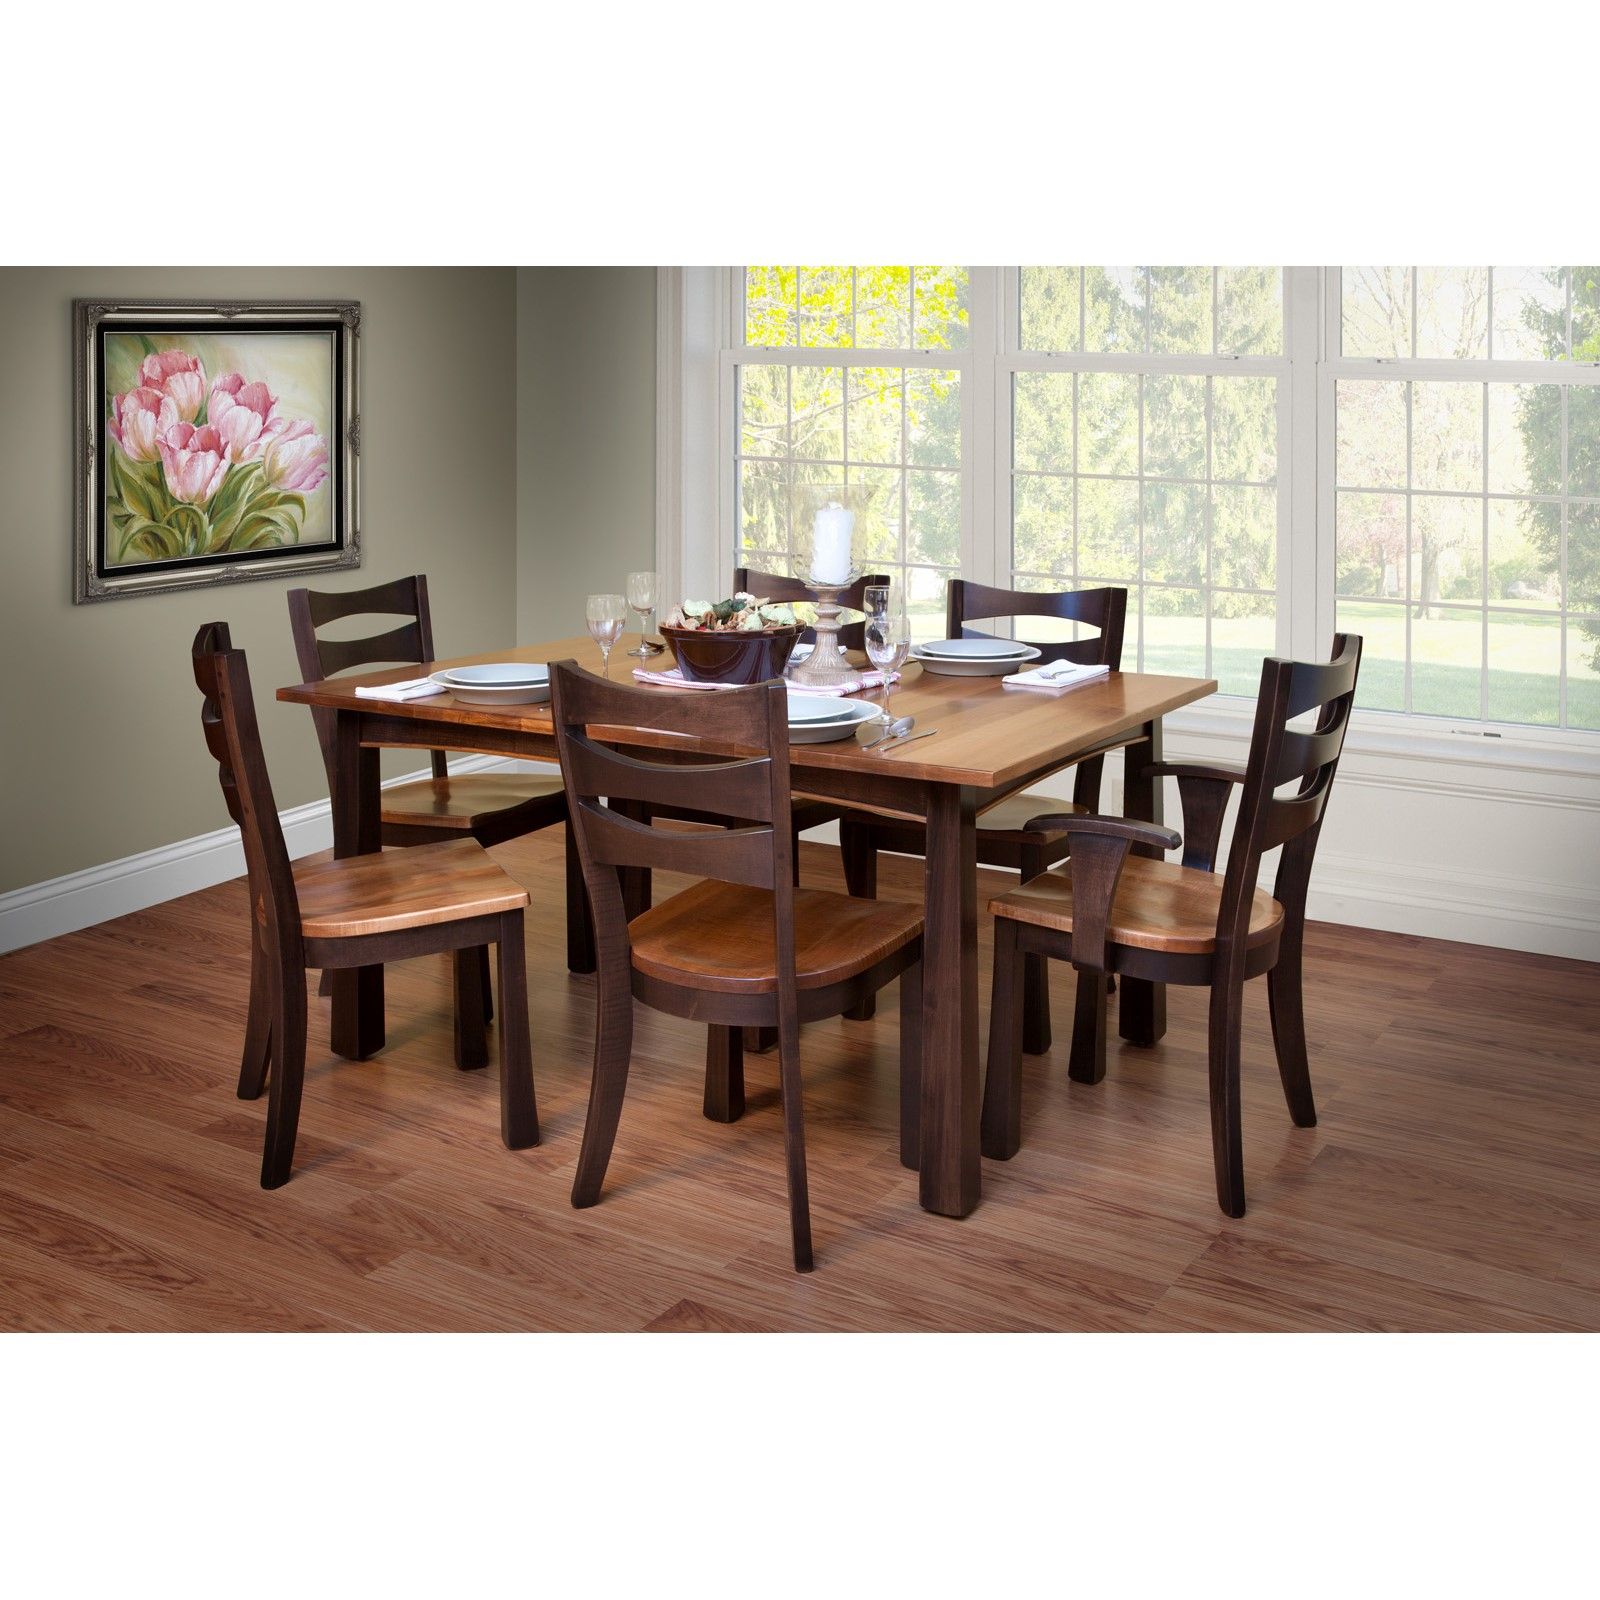 Trailway exeter 7 pc dining room set stewart roth furniture - Pc dining room set ...